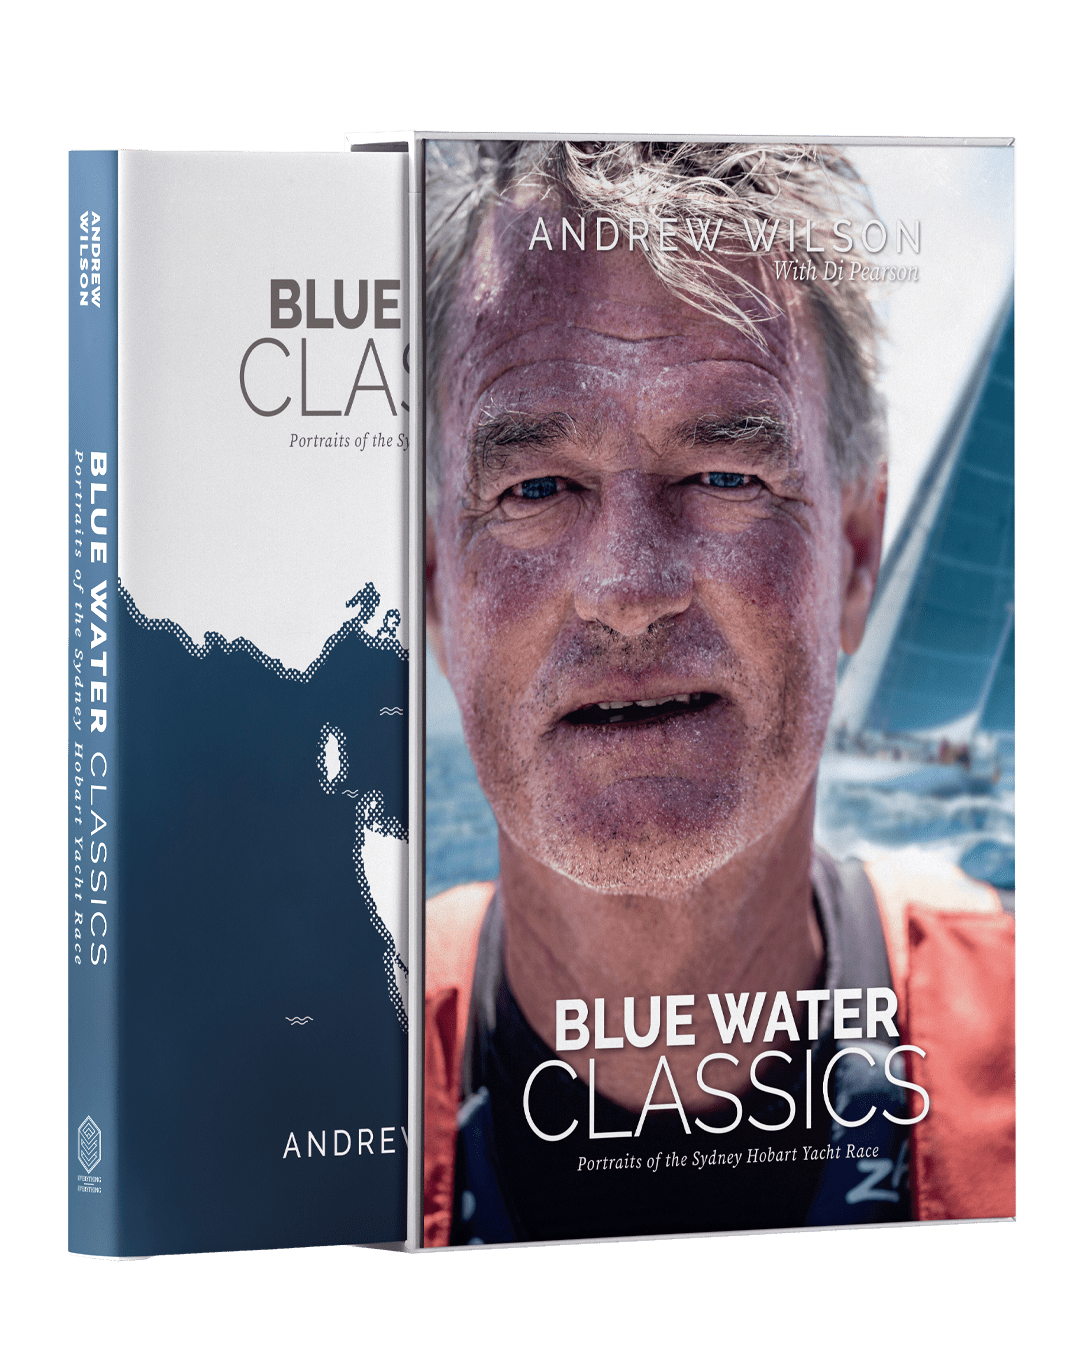 Blue Water Classics Deluxe Edition